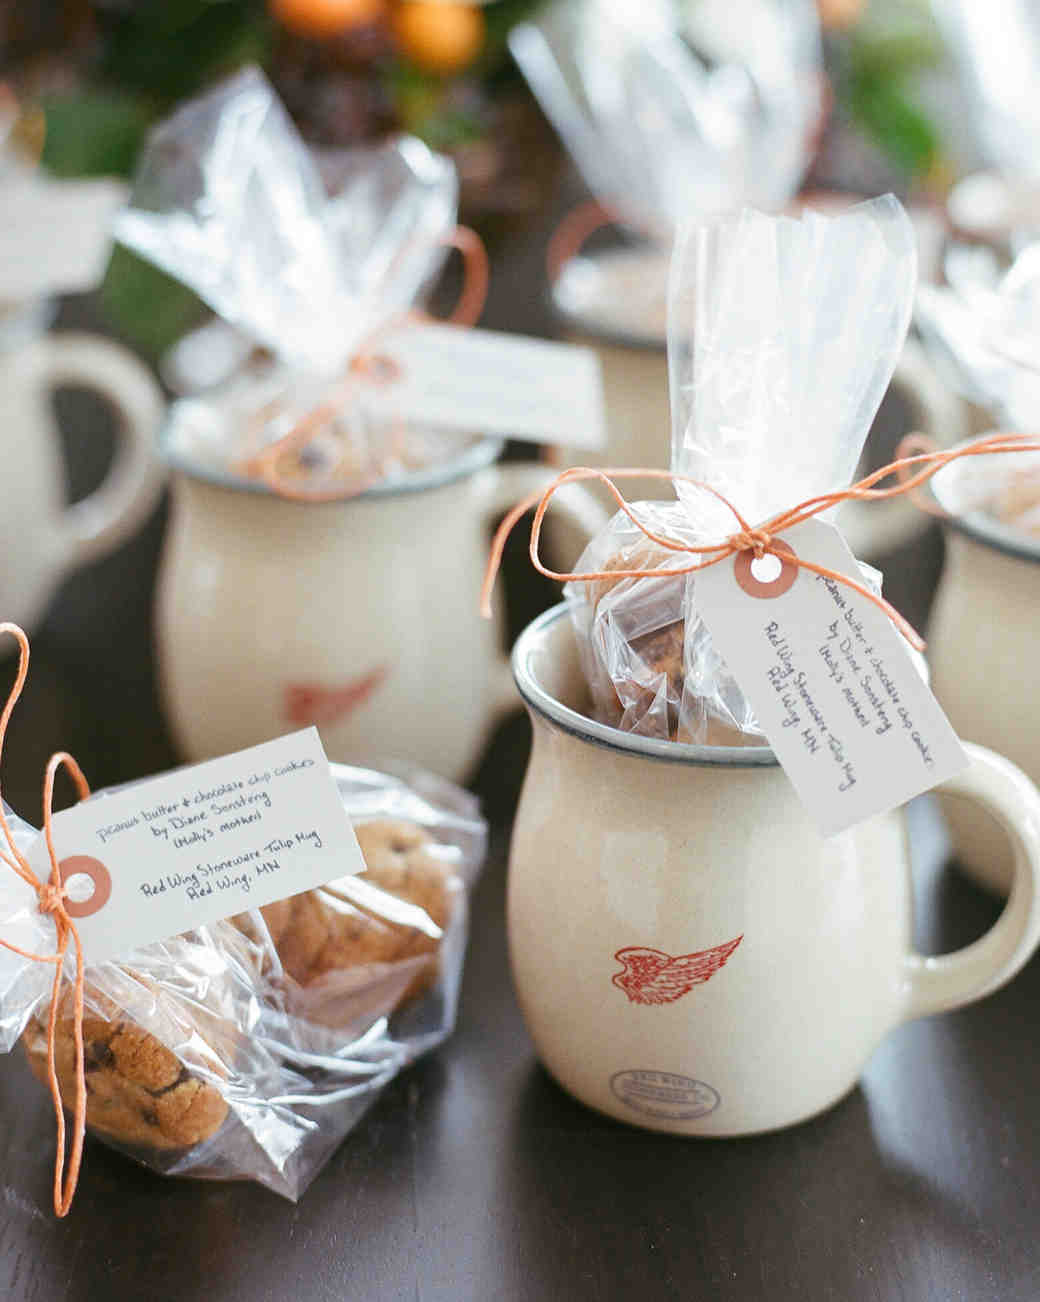 32 unique ideas for winter wedding favors martha stewart weddings junglespirit Gallery